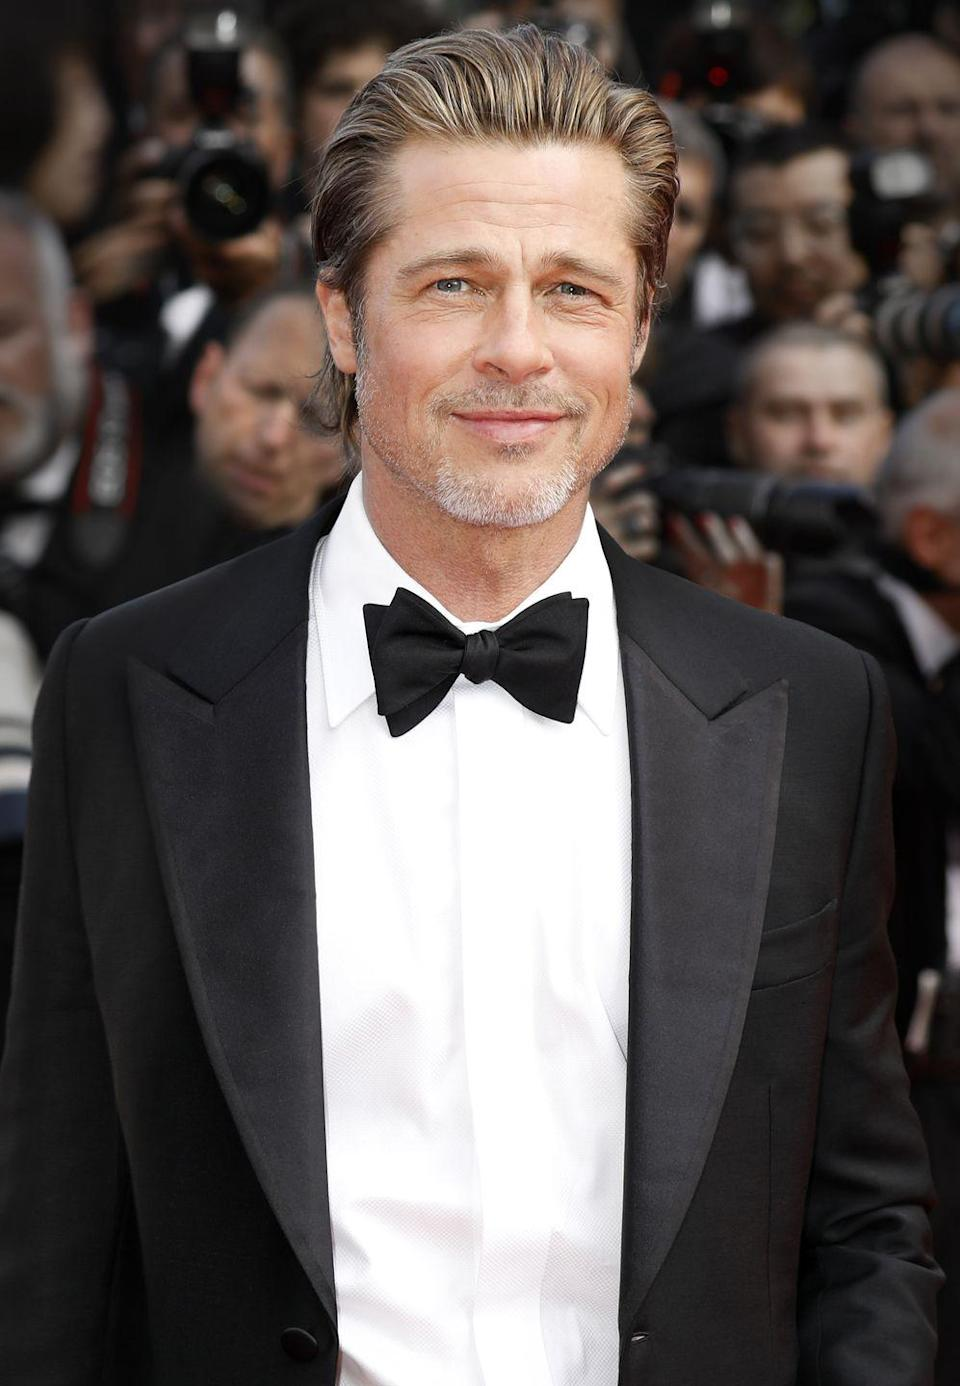 <p>Pitt is actually still basically on top of the world with a recent Academy Award win for Best Supporting Actor his role in <em>Once Upon A Time In Hollywood</em>. He's still has bustling career, which doesn't seem to be slowing down anytime soon. His Plan B production company also gave us films like <em>Moonlight</em>, <em>12 Years a Slave</em>, and other award winners.</p>